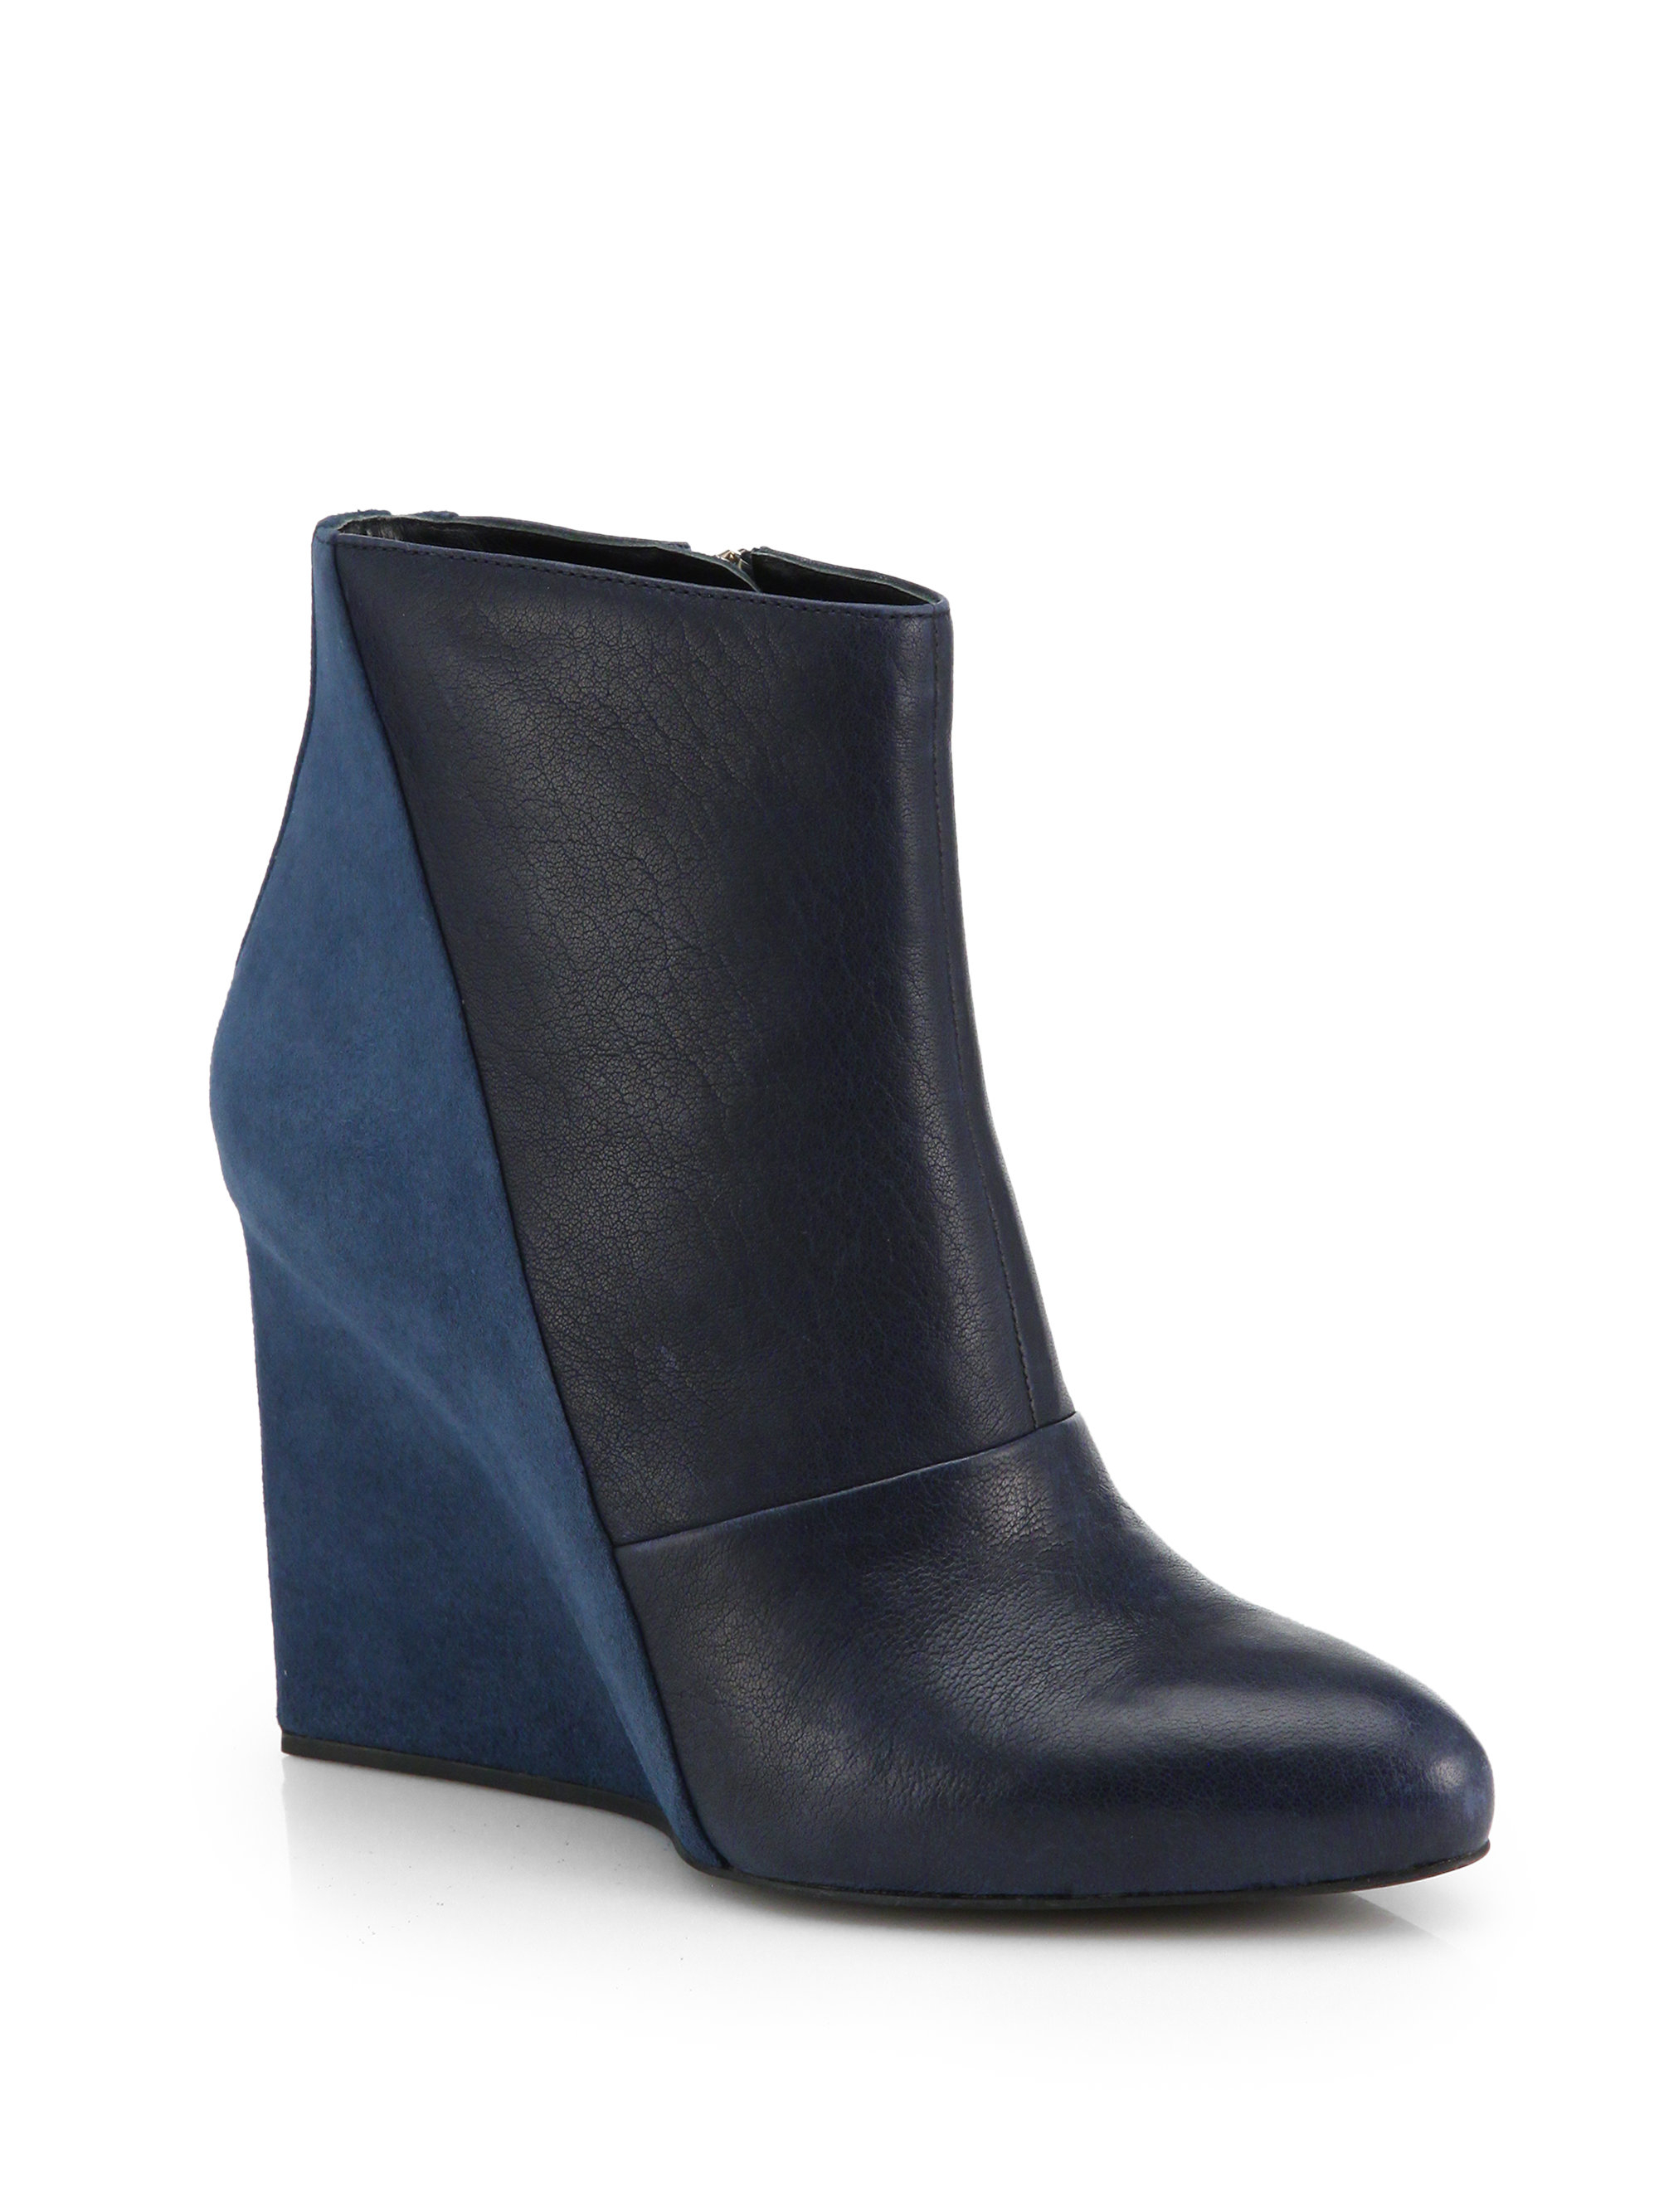 see by chlo 233 suede leather wedge ankle boots in blue lyst